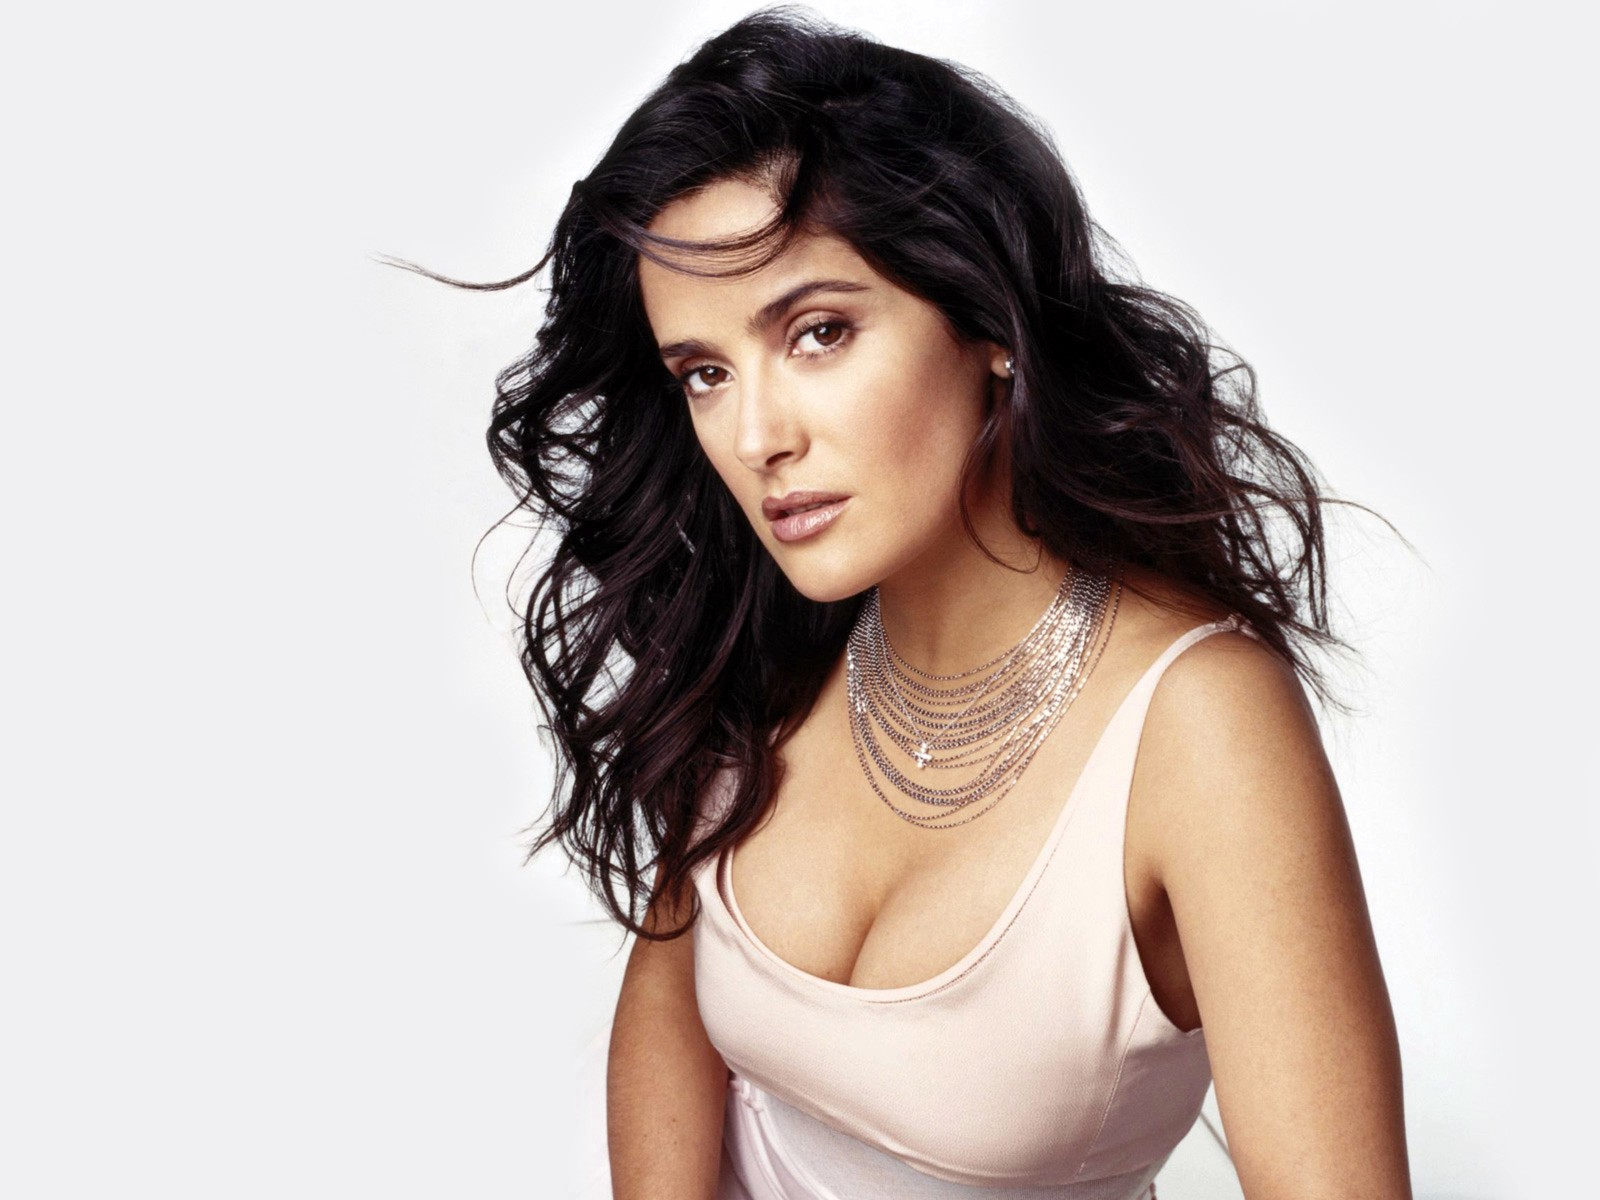 Salma Hayek New 2010 wallpaper